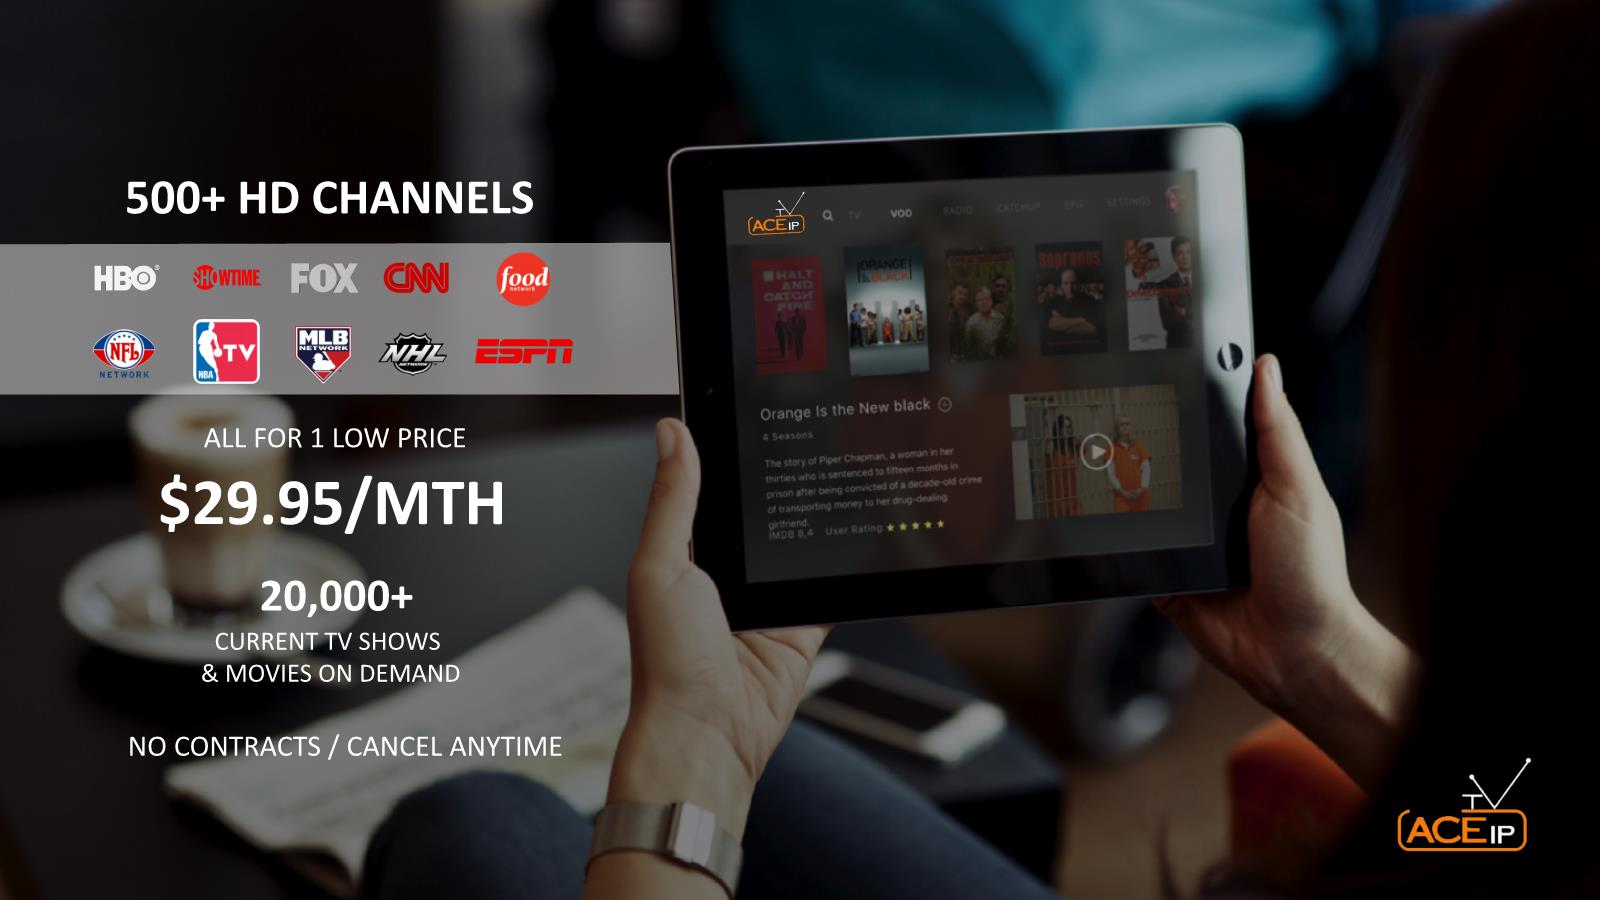 ACE IPTV – Ditch the cable companies